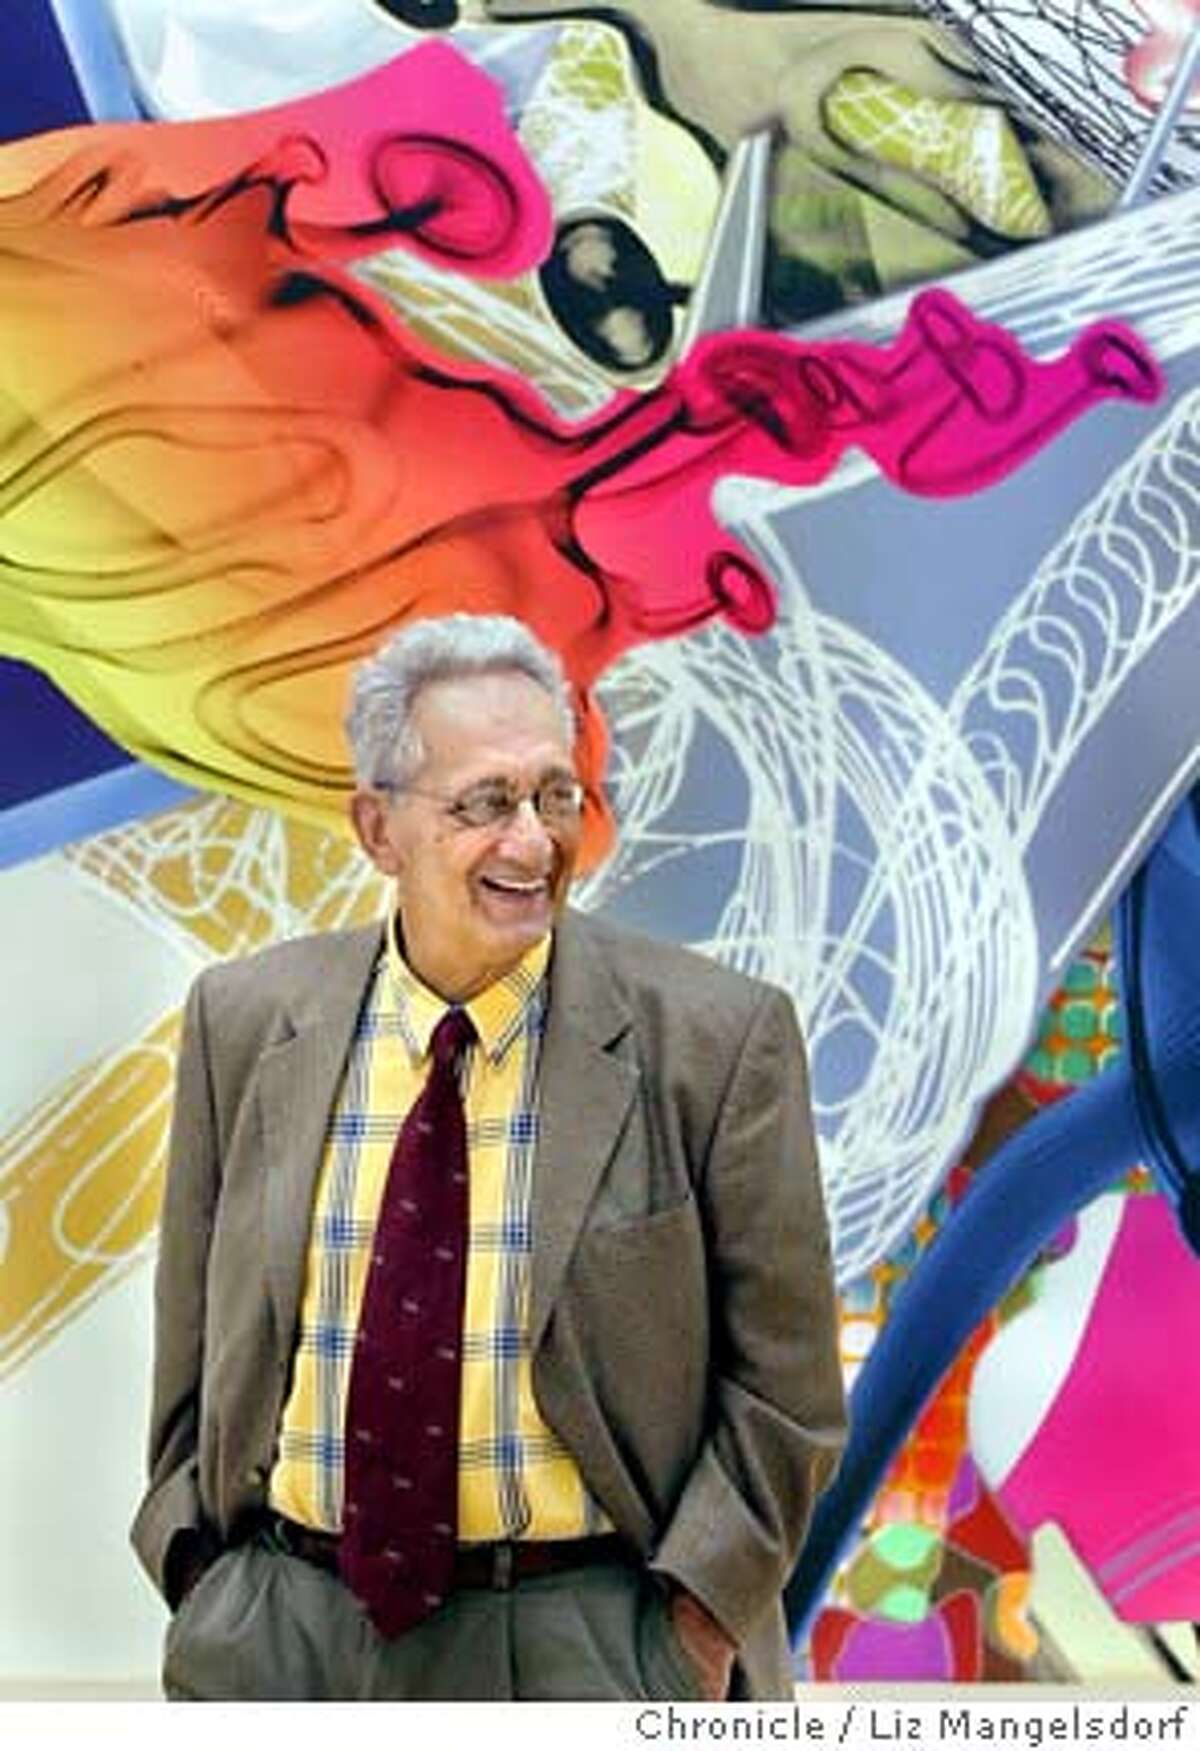 """stella005_lm.JPG Event on 6/12/04 in San Francisco. Frank Stella, in front of his painting titles """"The Duel"""", which is an acrylicd on canvas, 2001. Painter Frank Stella with his work that is hanging at the SFMOMA. Liz Mangelsdorf / The Chronicle"""